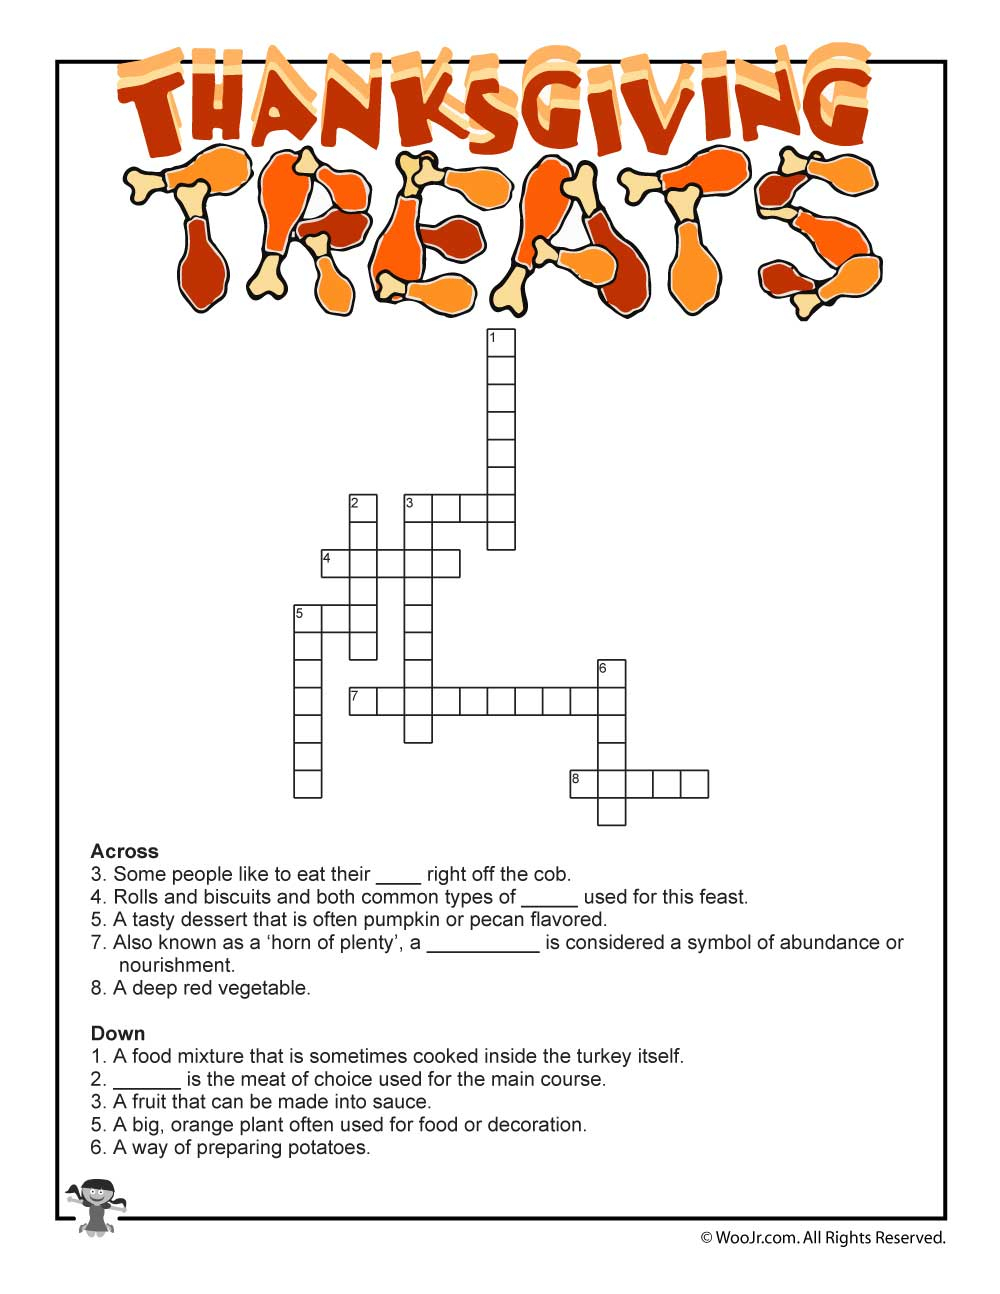 Thanksgiving Crossword Puzzle | Woo! Jr. Kids Activities - Printable Thanksgiving Crossword Puzzles